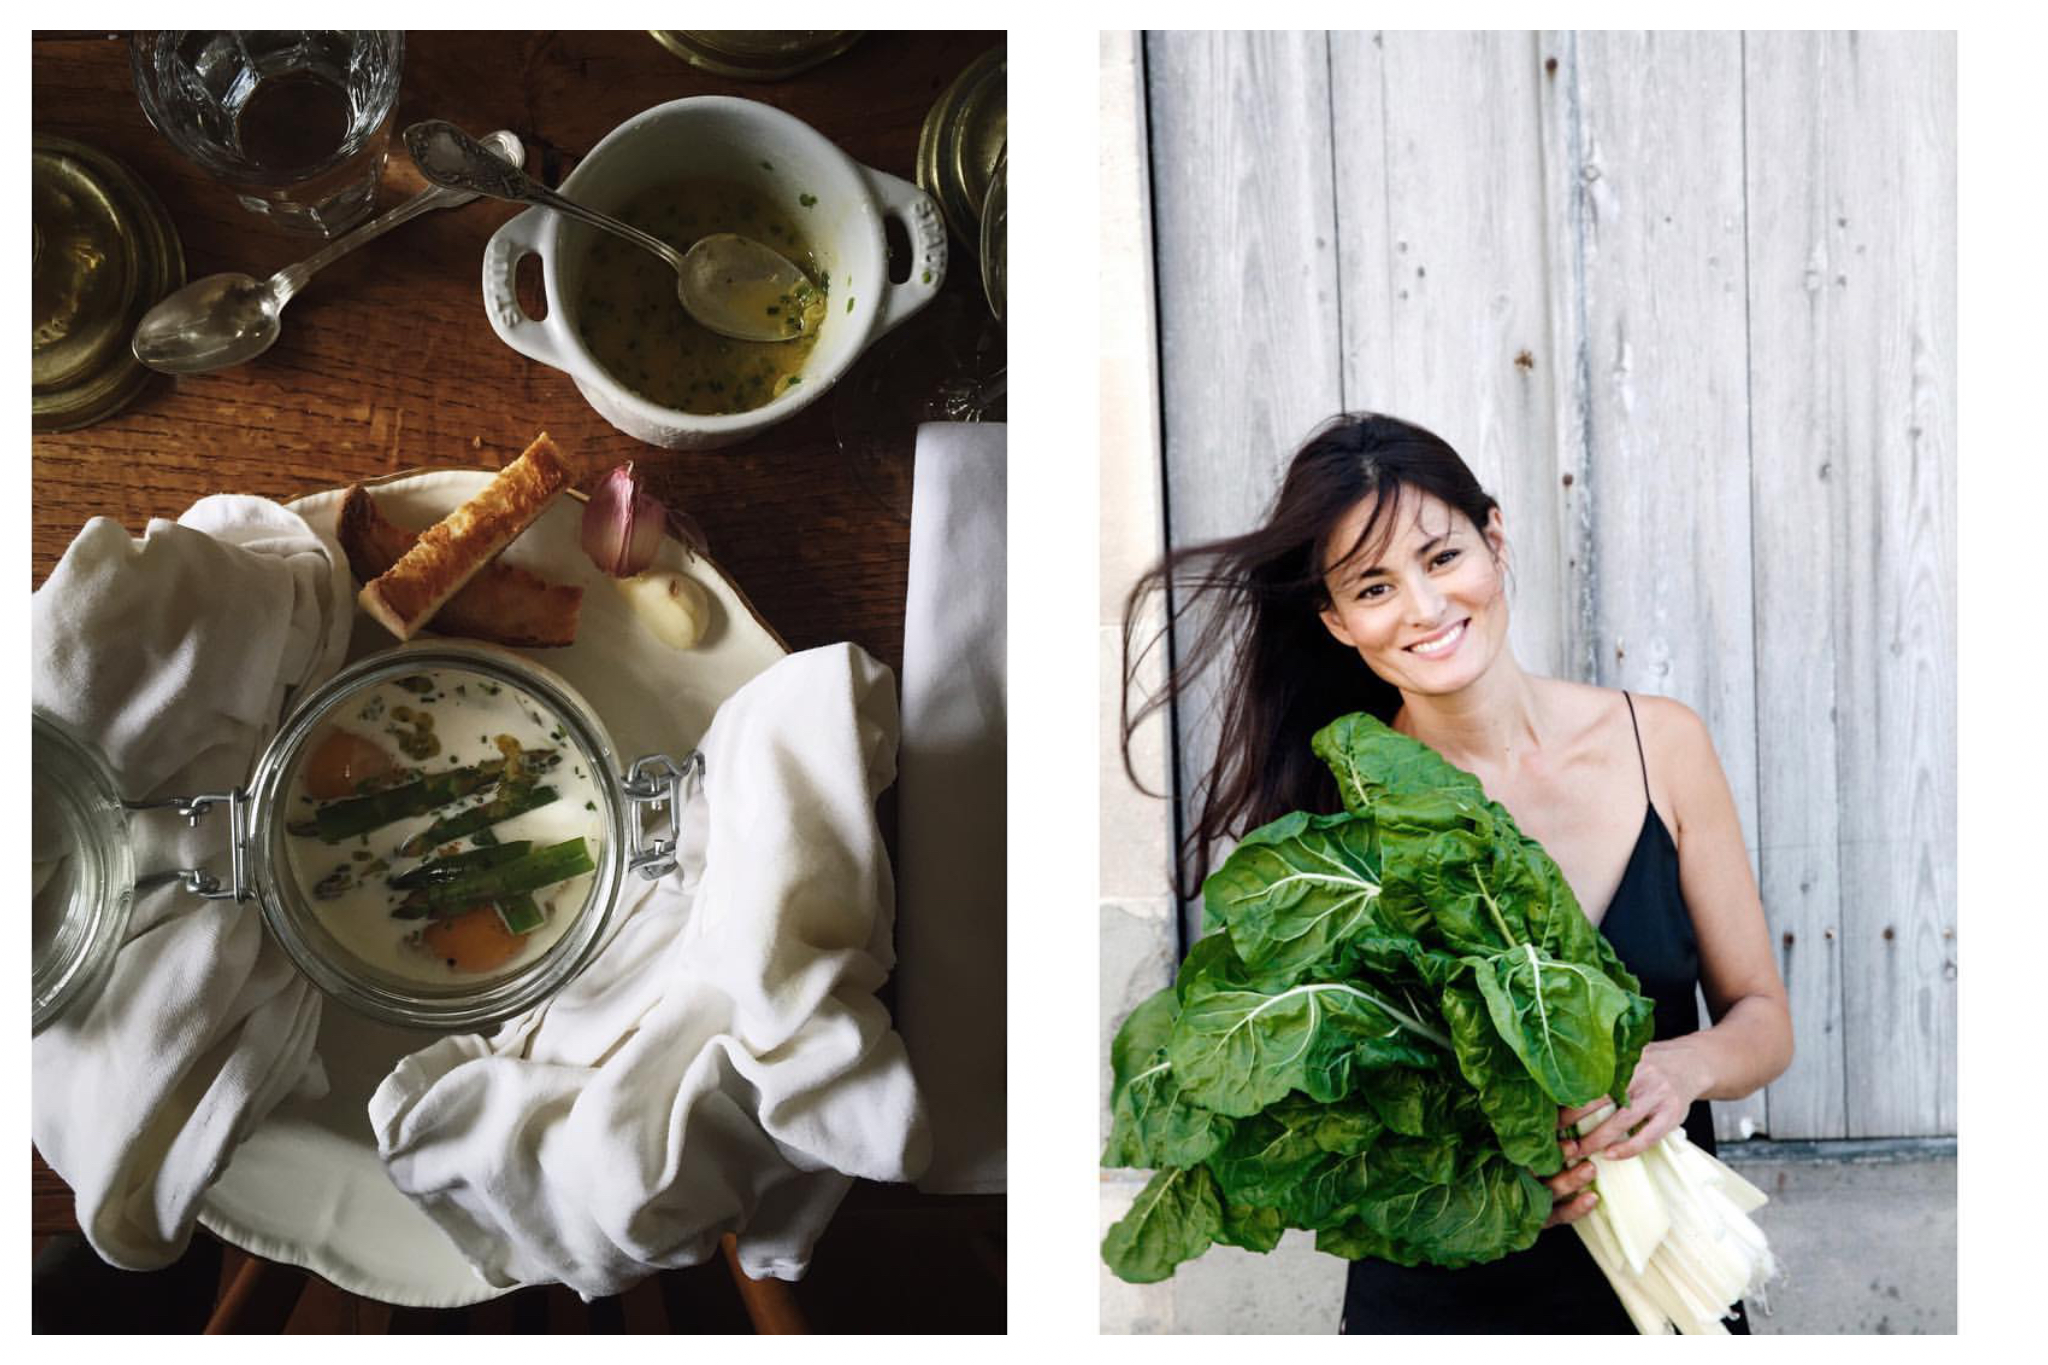 On left: A luscious oeufs en cocotte - baked eggs - with asparagus wait to be dunked by freshly toasted bread. On right: A portrait of Mimi Thorisson, the founder of the popular eponymous food blog. She resides in the Médoc region of France, hosting workshops, writing cookbooks, and wrangling her large family.